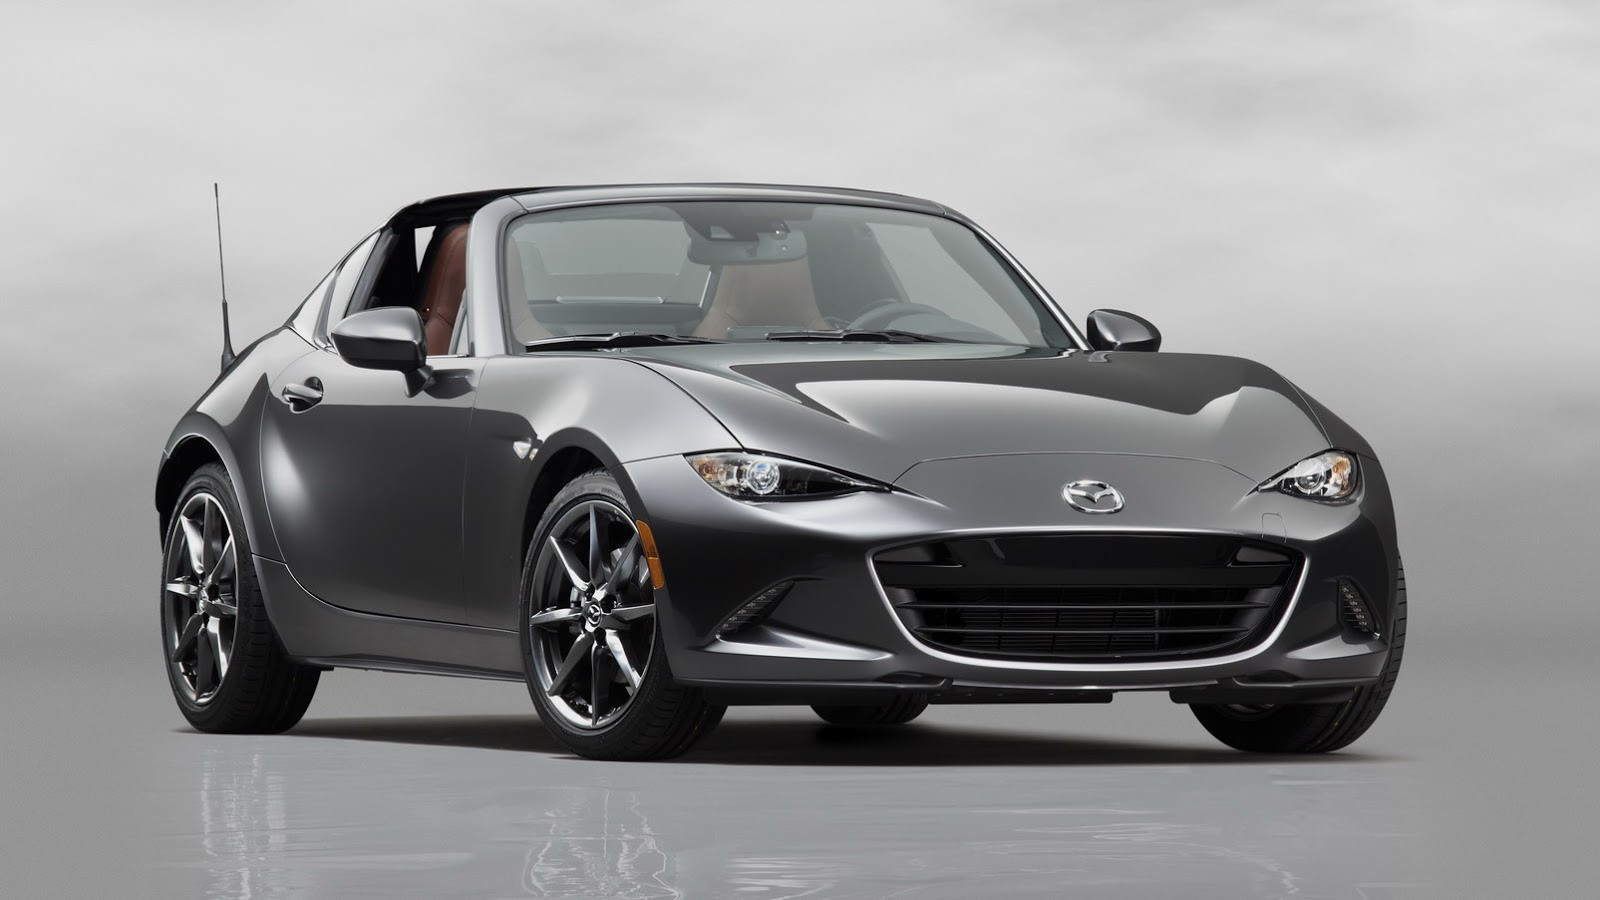 Source http www carscoops com 2017 02 does mazda mx 5 rf need louvers html